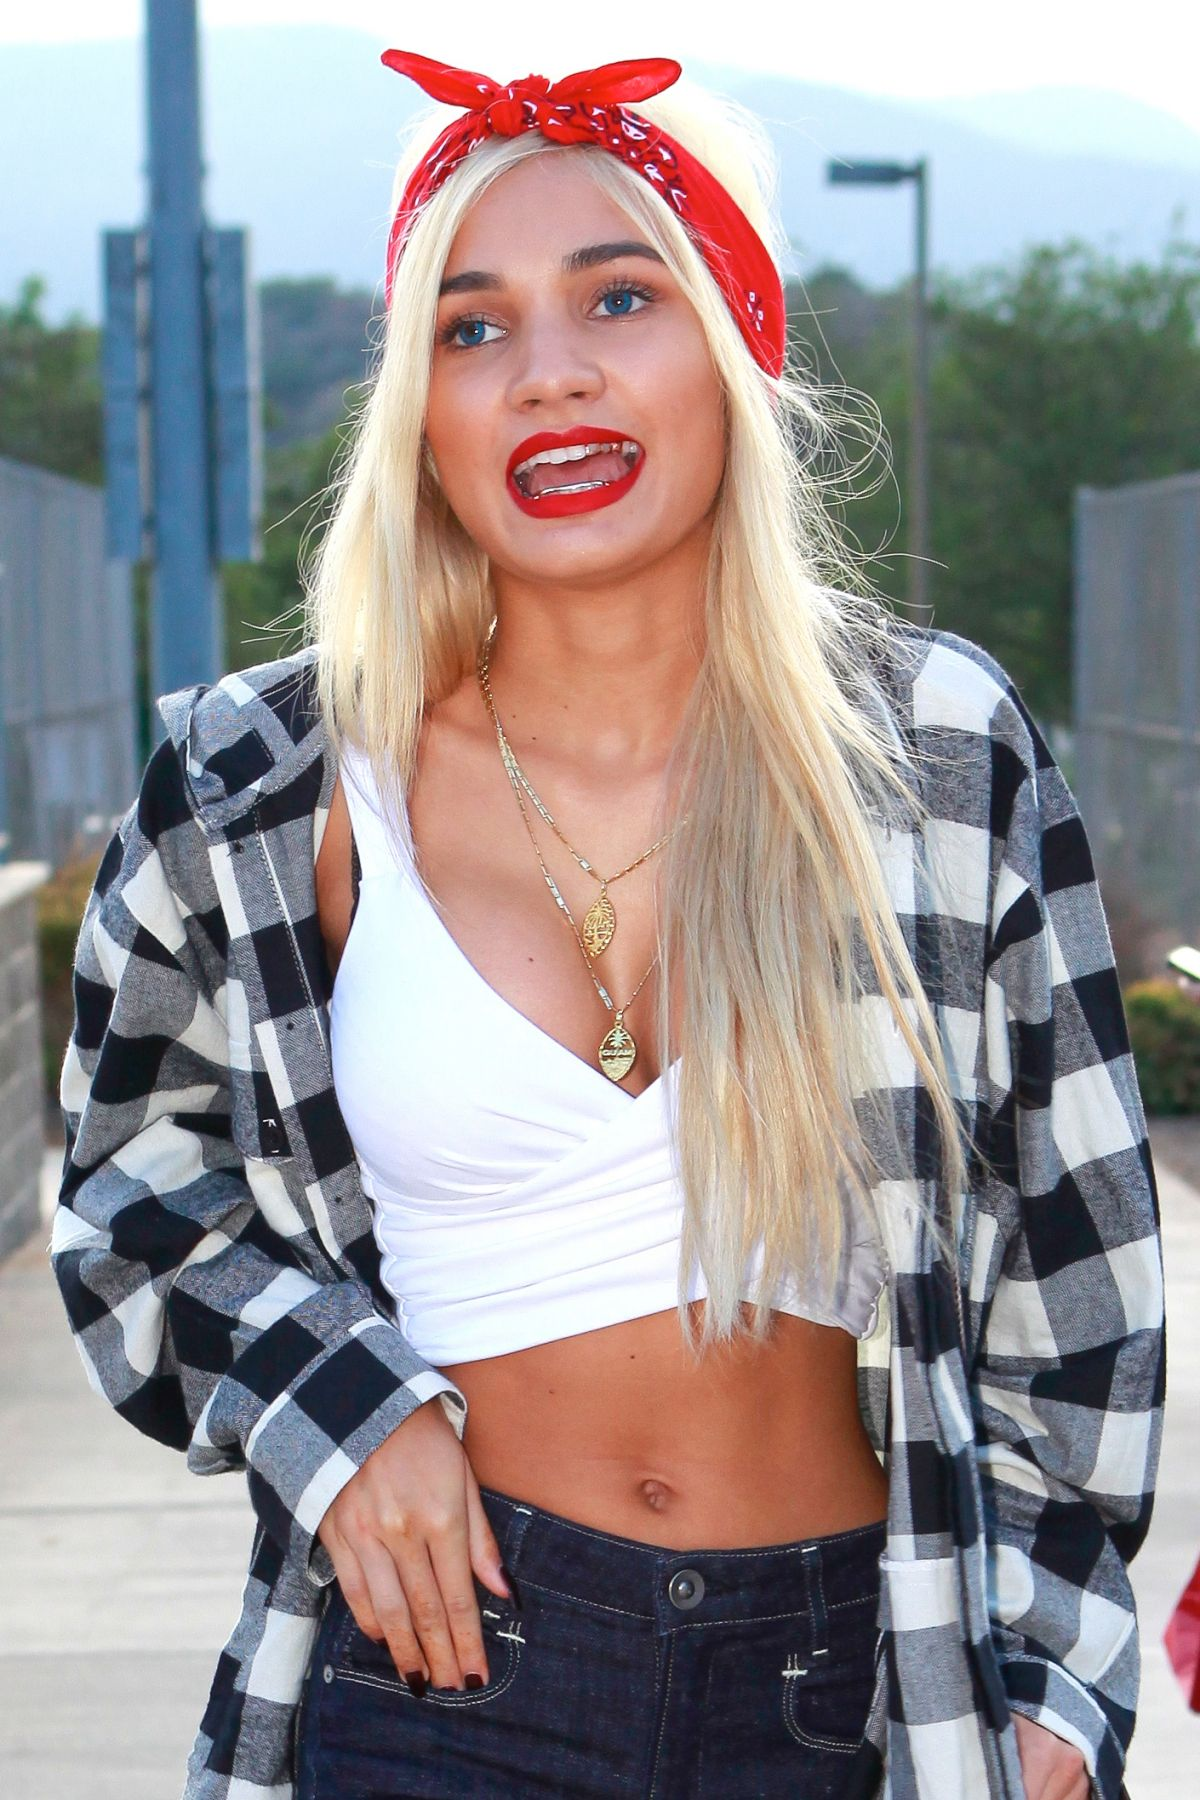 Celebrites Pia Mia nudes (18 photos), Bikini